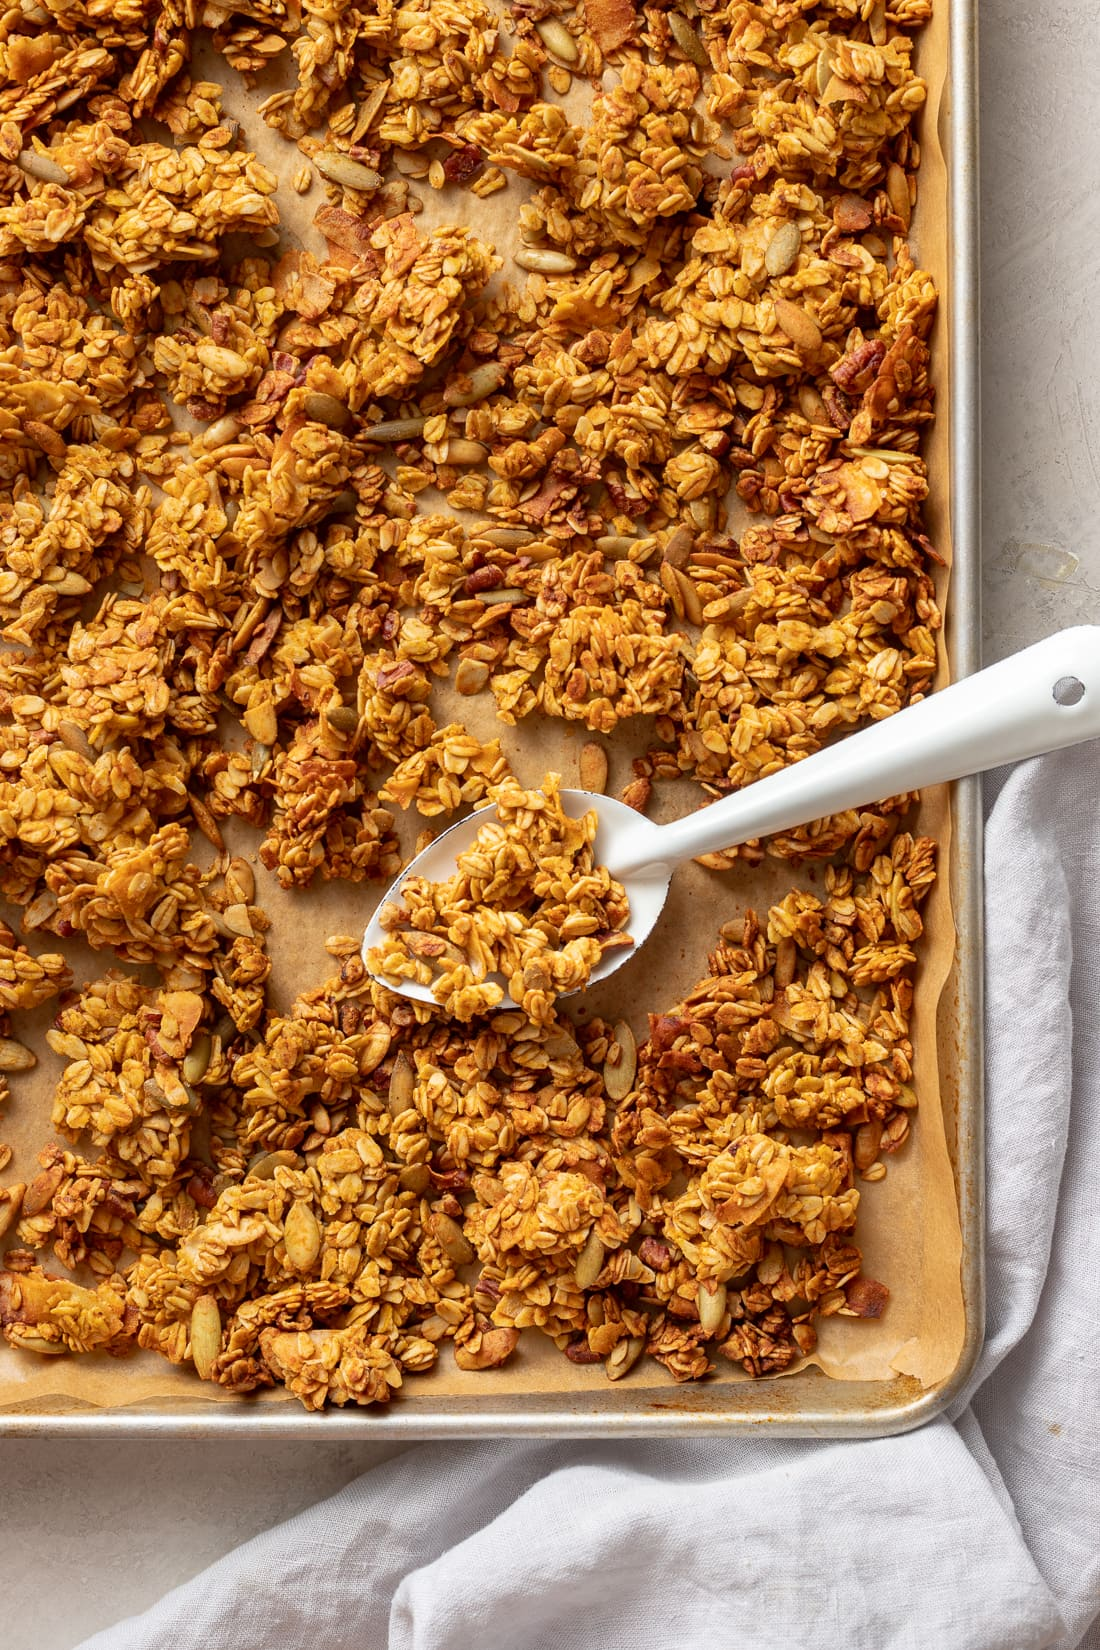 A large sheet pan full of toasty, just-baked pumpkin spice granola.